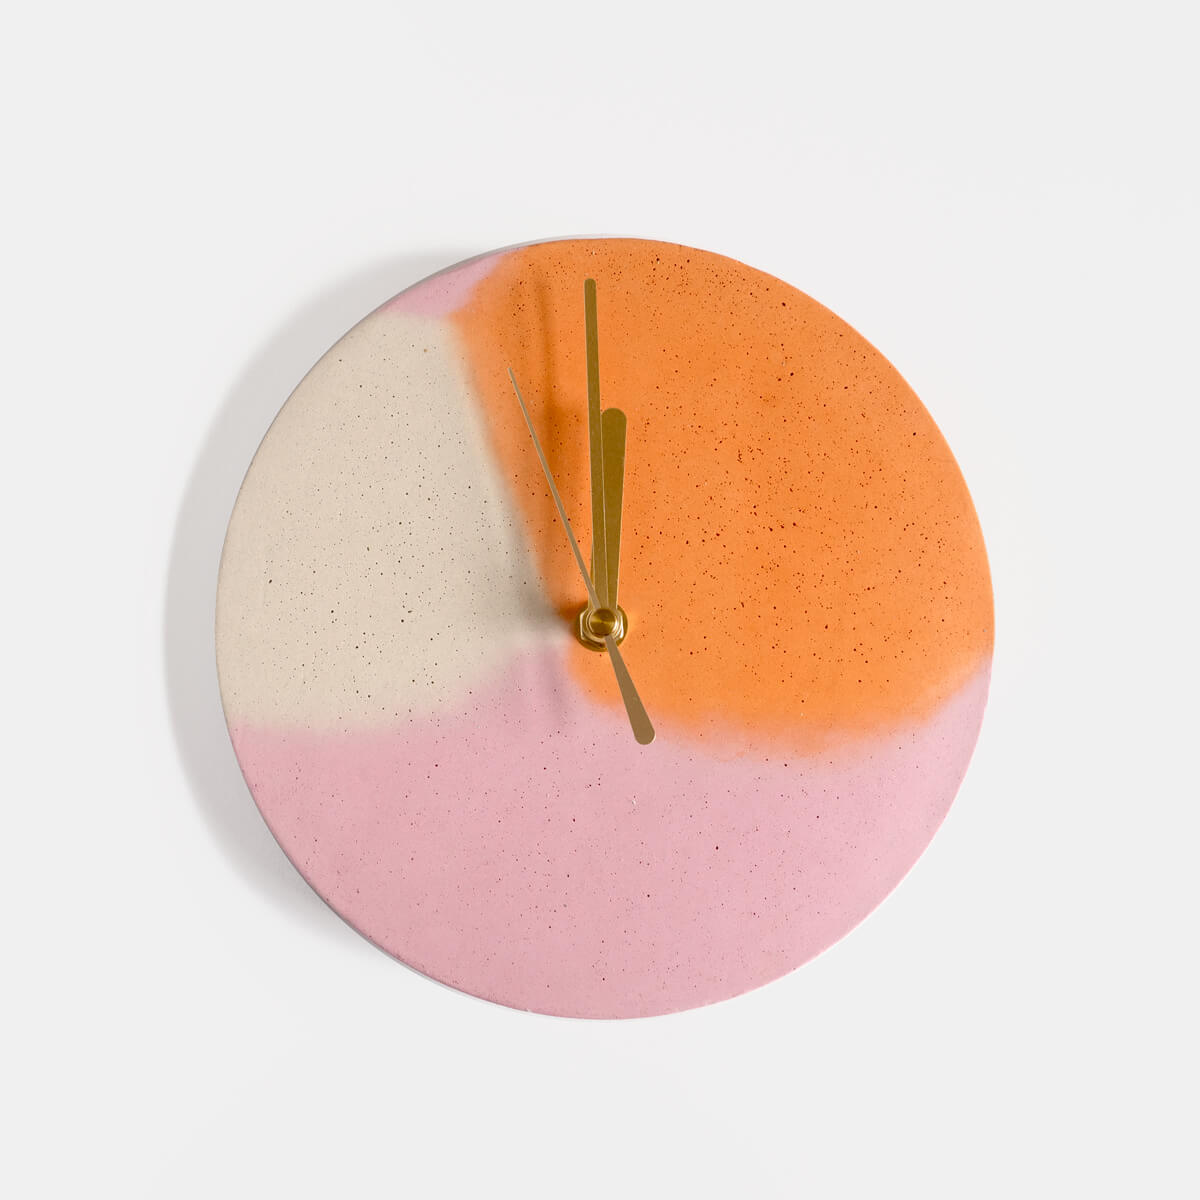 Pink and orange round concrete wall clock by Studio Emma for Curious Makers